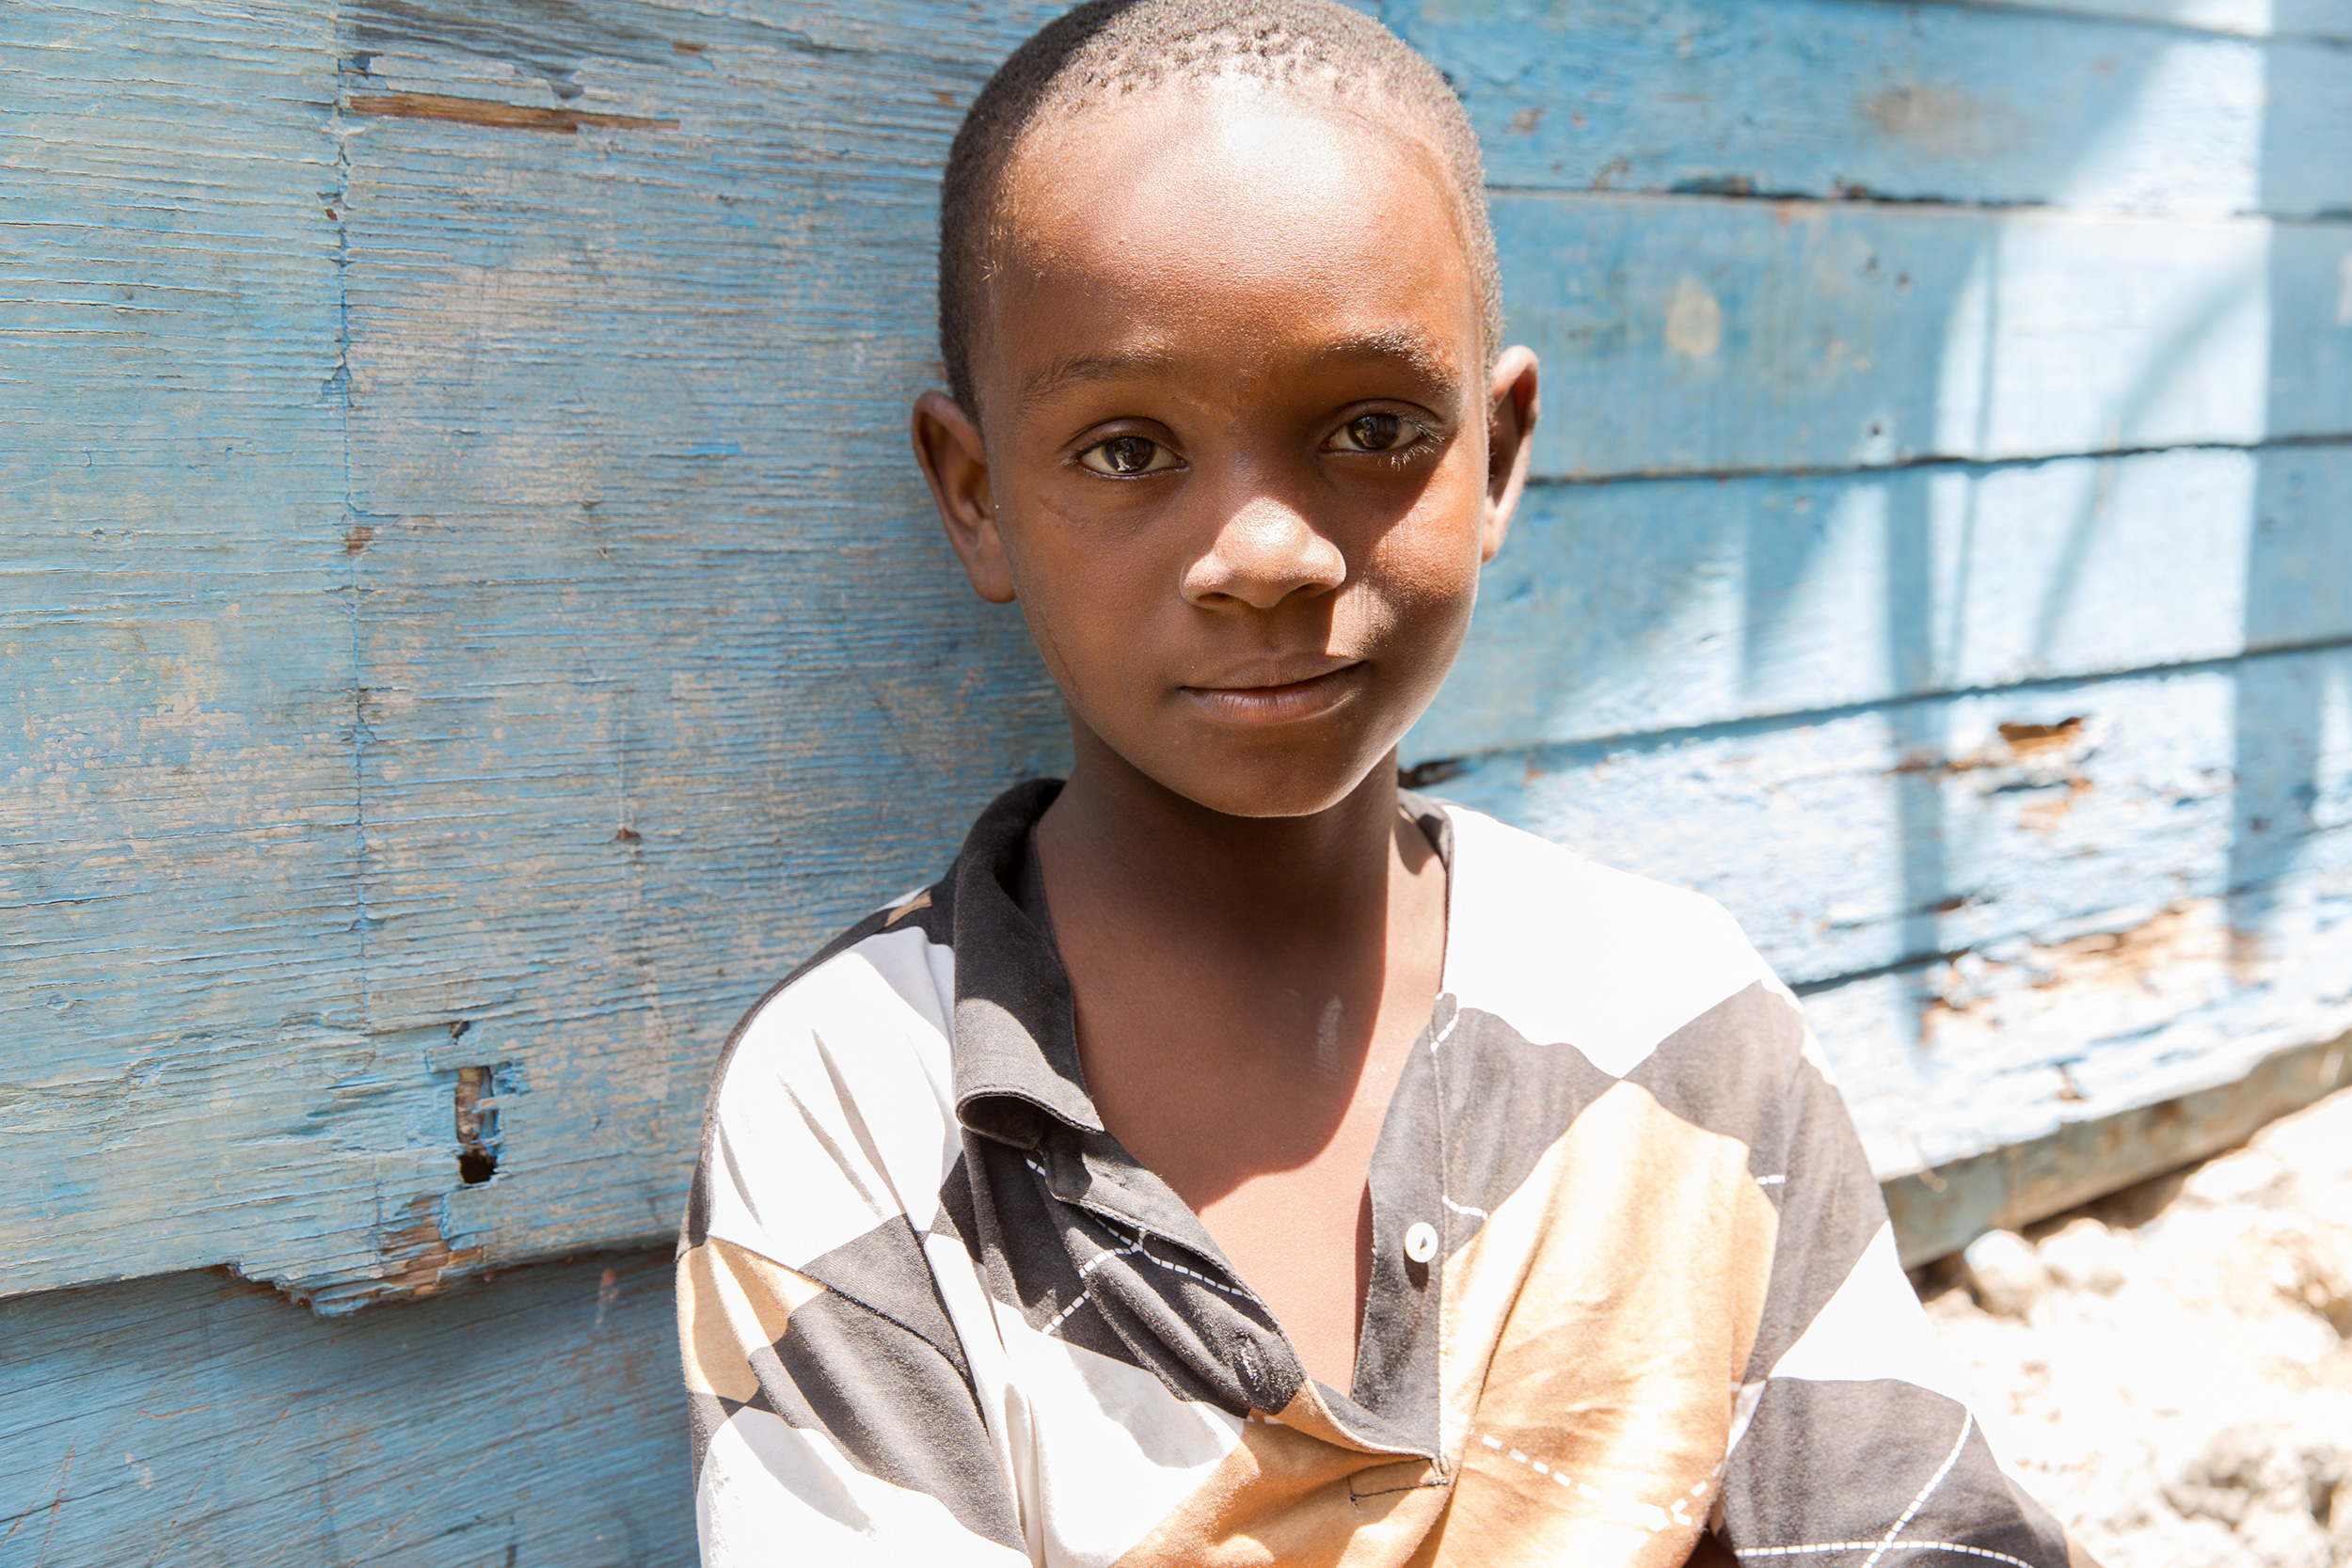 TRAVEL_HAITI_littleboy_portrait_portauprince_city_caribbean_0561_WB